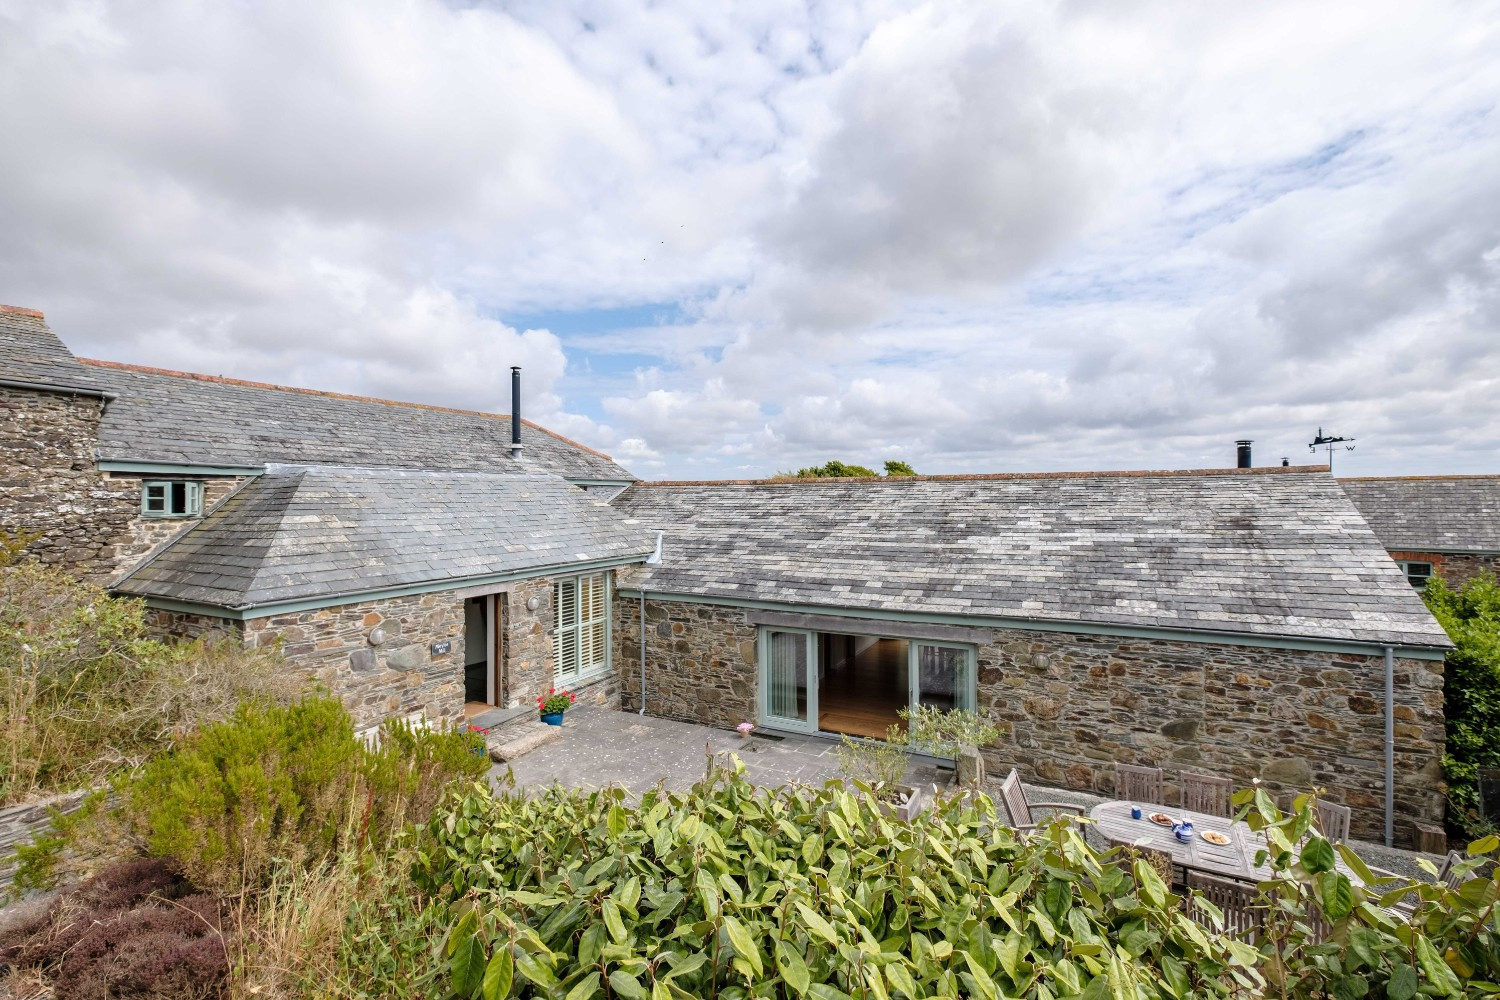 THE MILL HOUSE - Spacious luxury house with large kitchen living area and garden - Sleeps 8